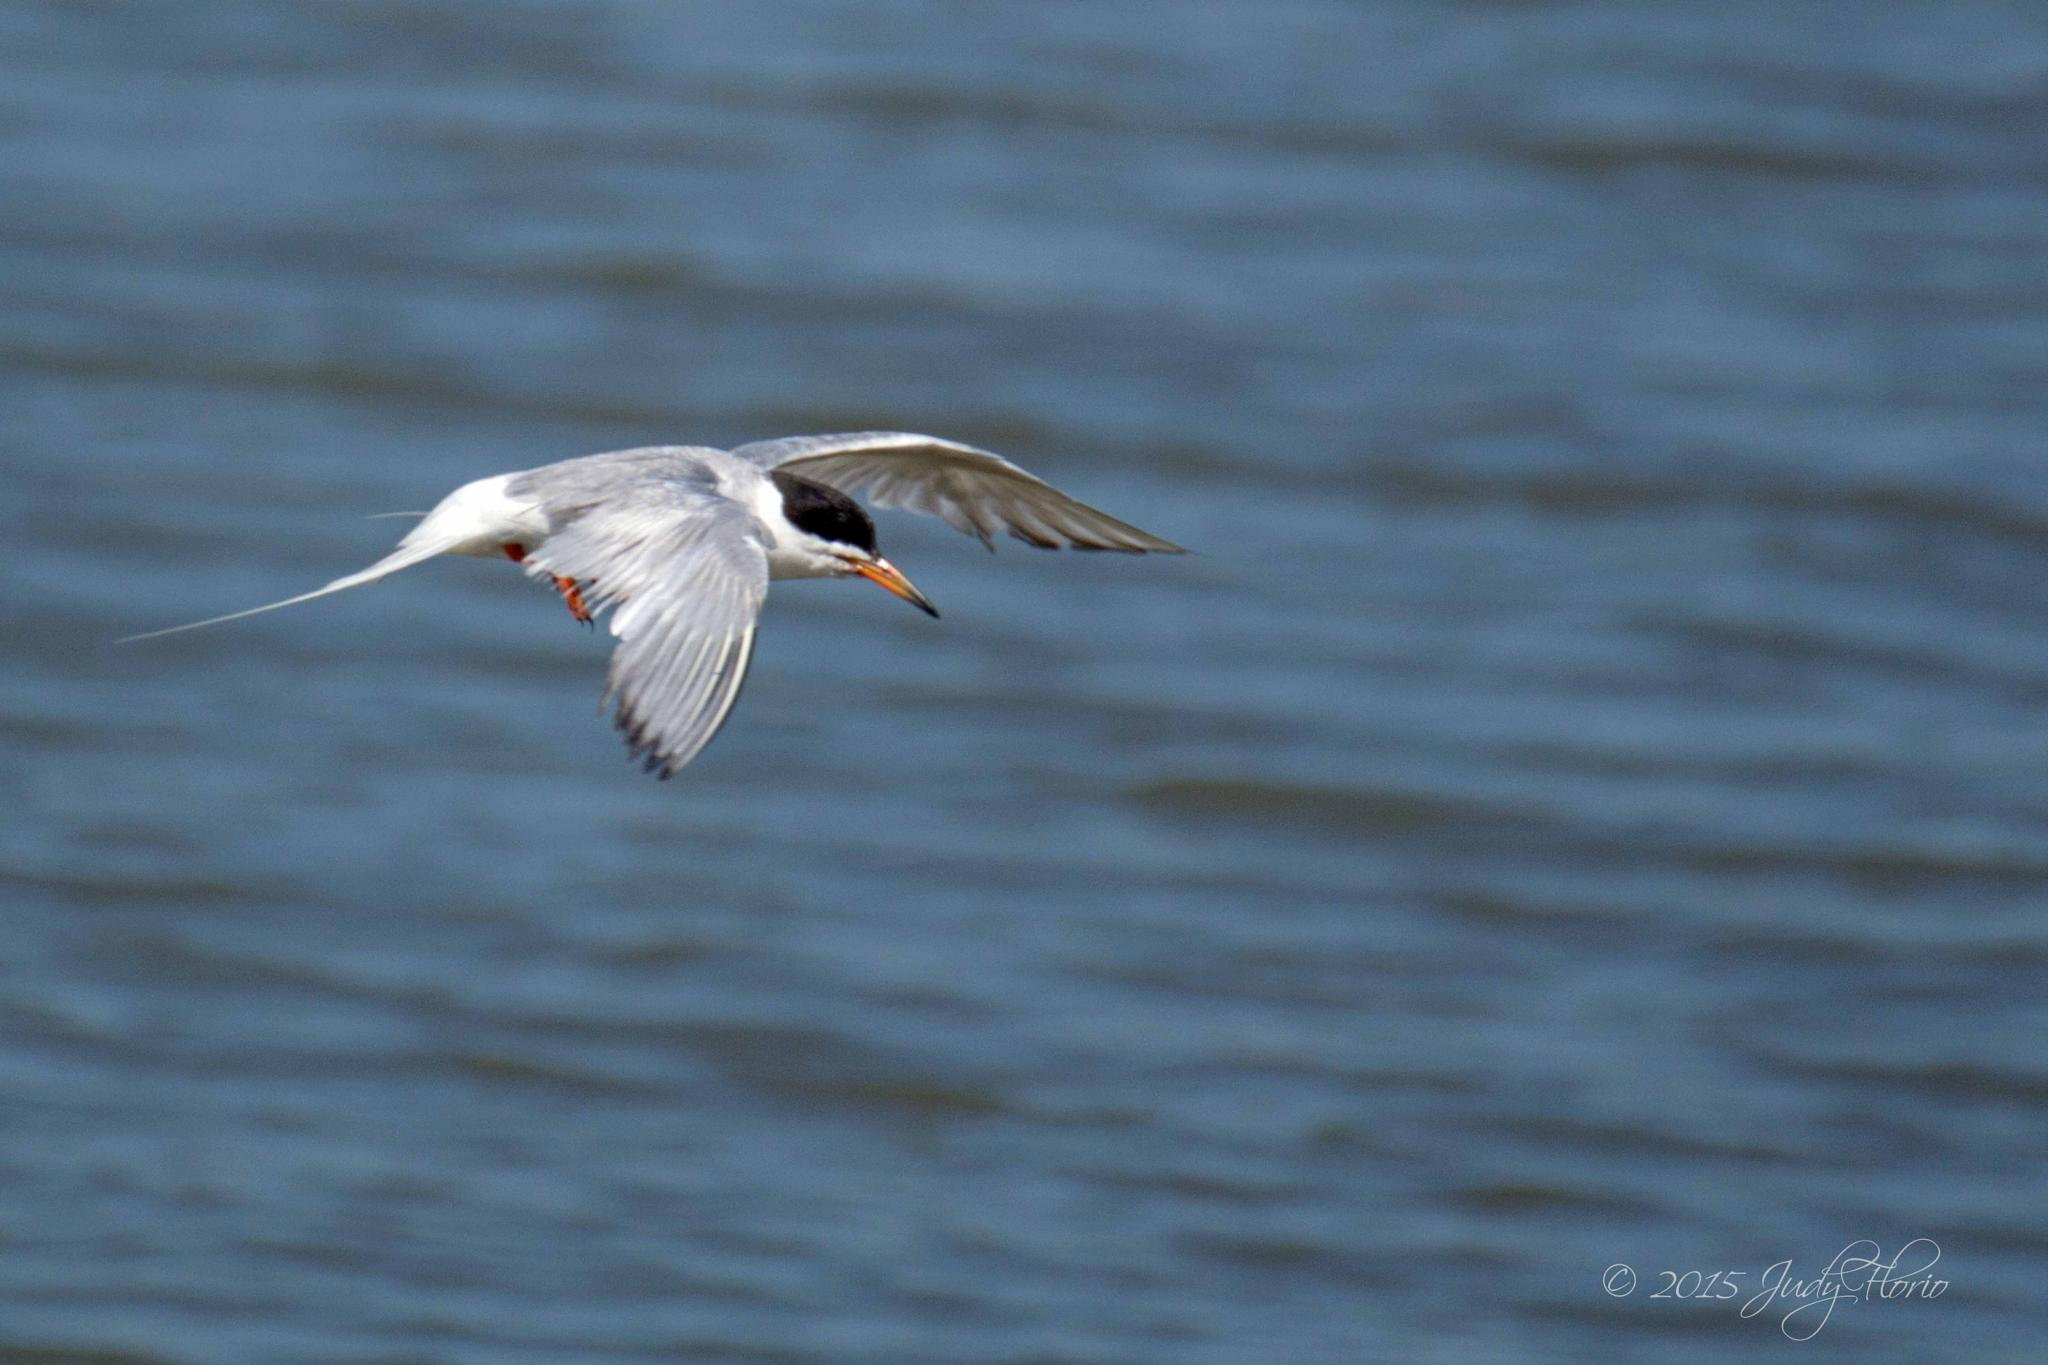 Flying tern by Judy Florio